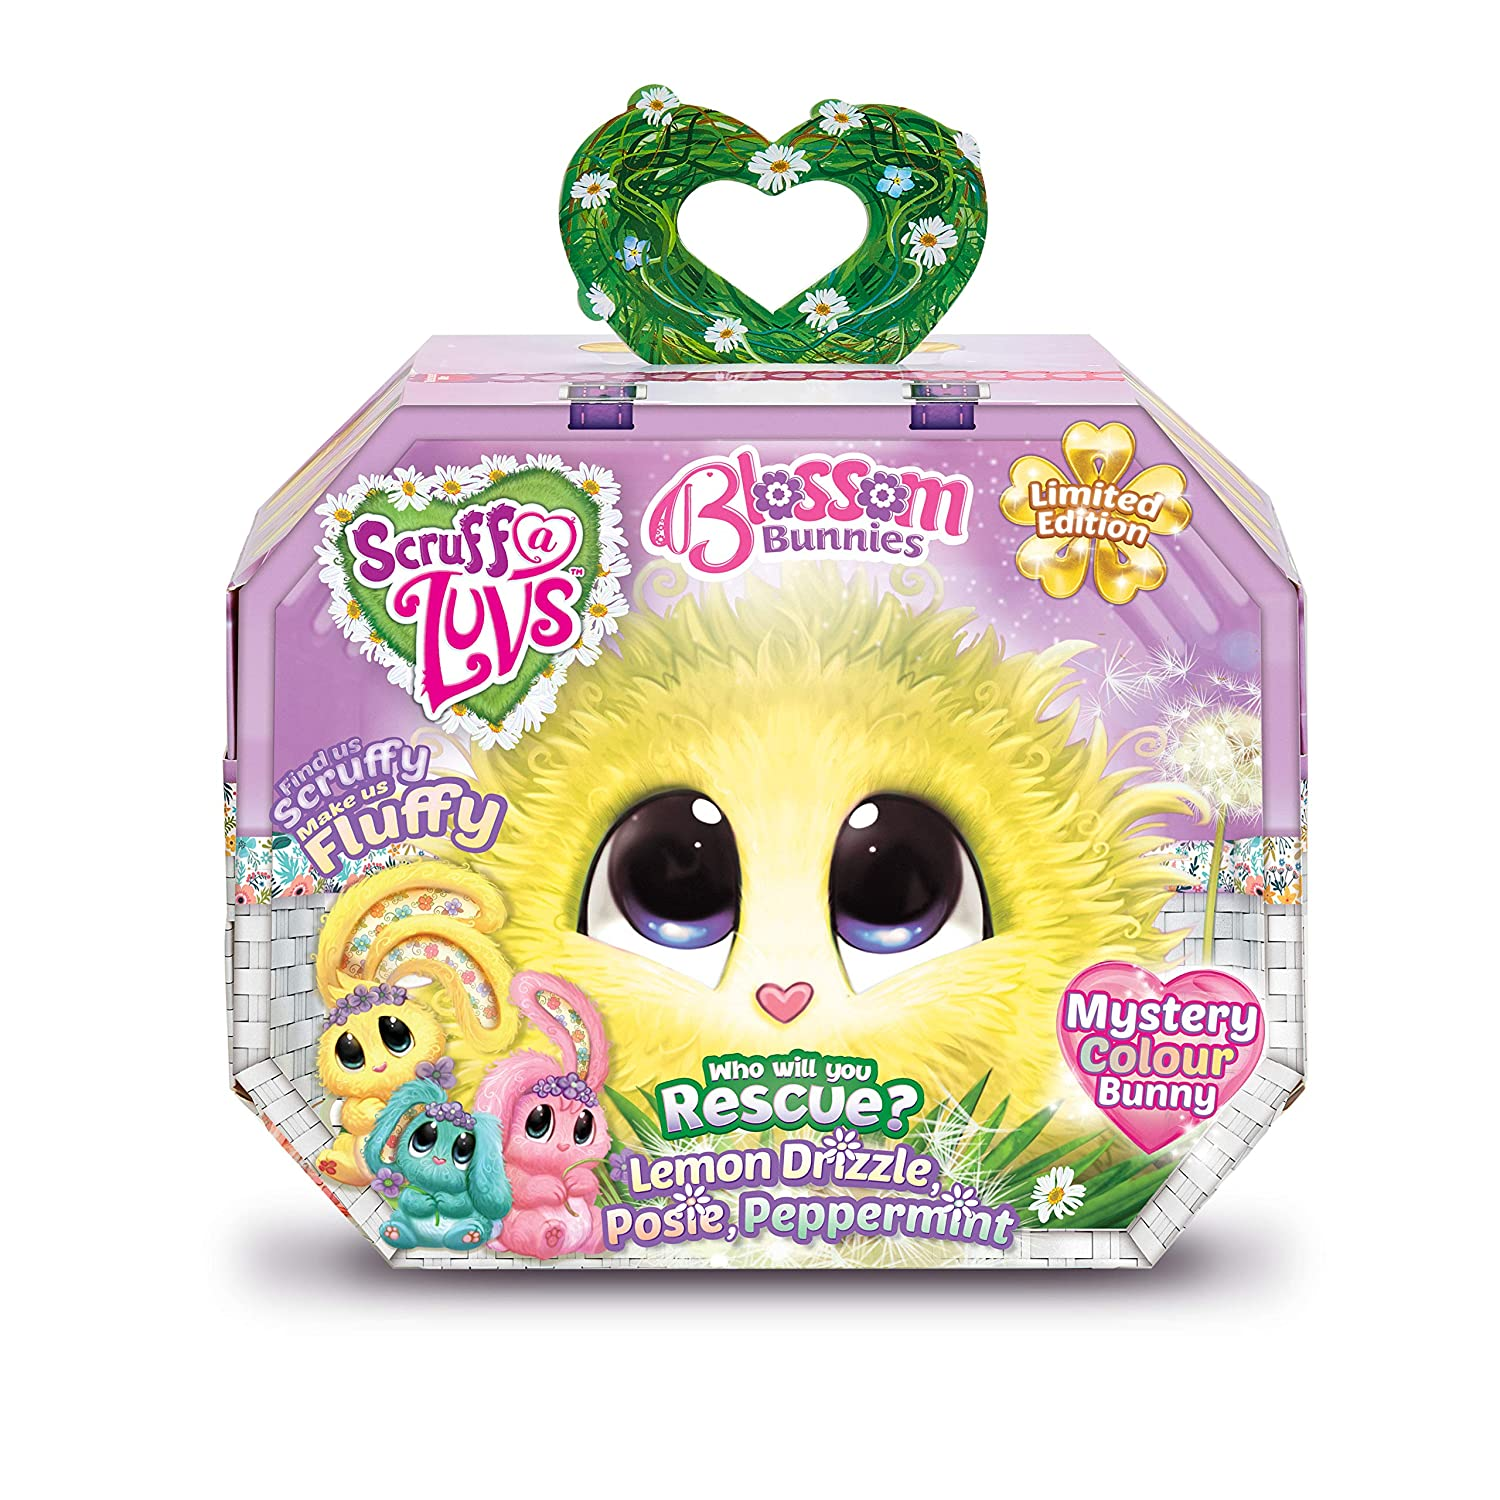 Worlds Apart Scruff-a-Luvs Blossom Bunnies - Rescue Pet Soft Toy - Limited Edition Rabbit (Pink, Yellow orGreen) - Styles May Vary